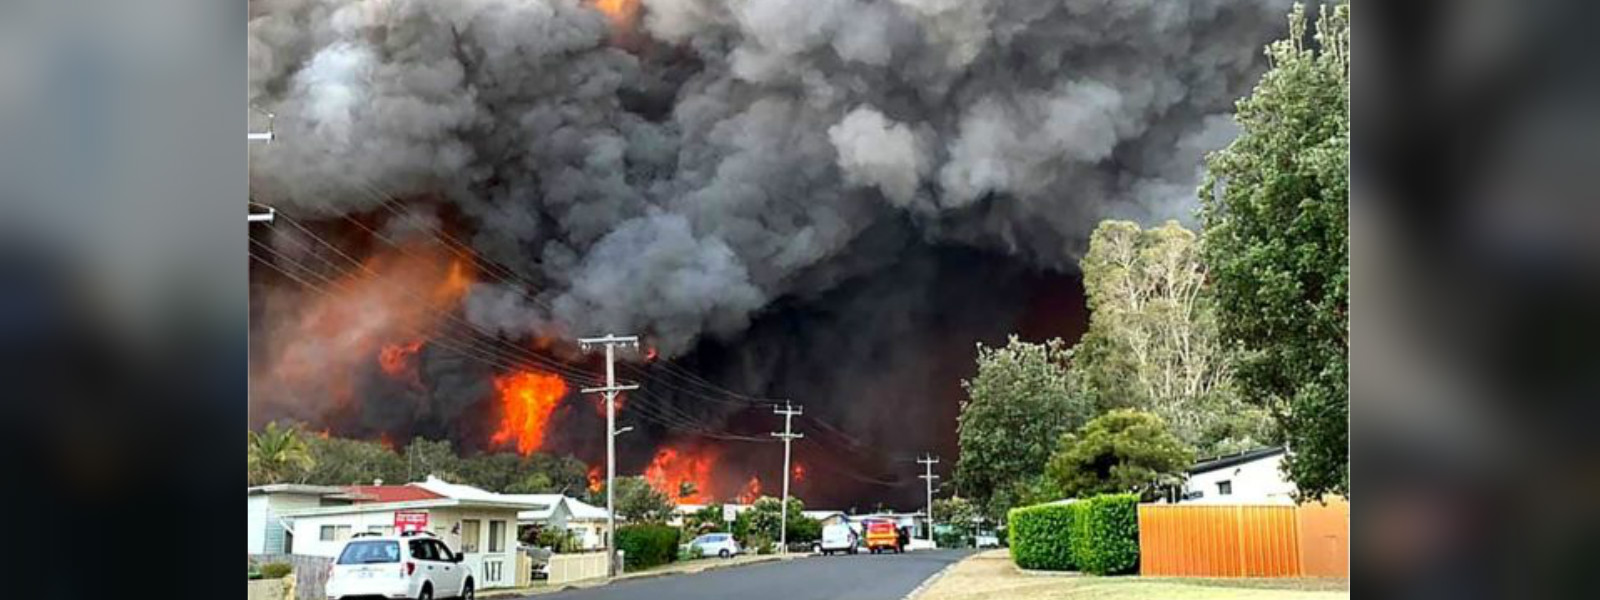 Aussie Bushfires: Conditions will continue to get worse